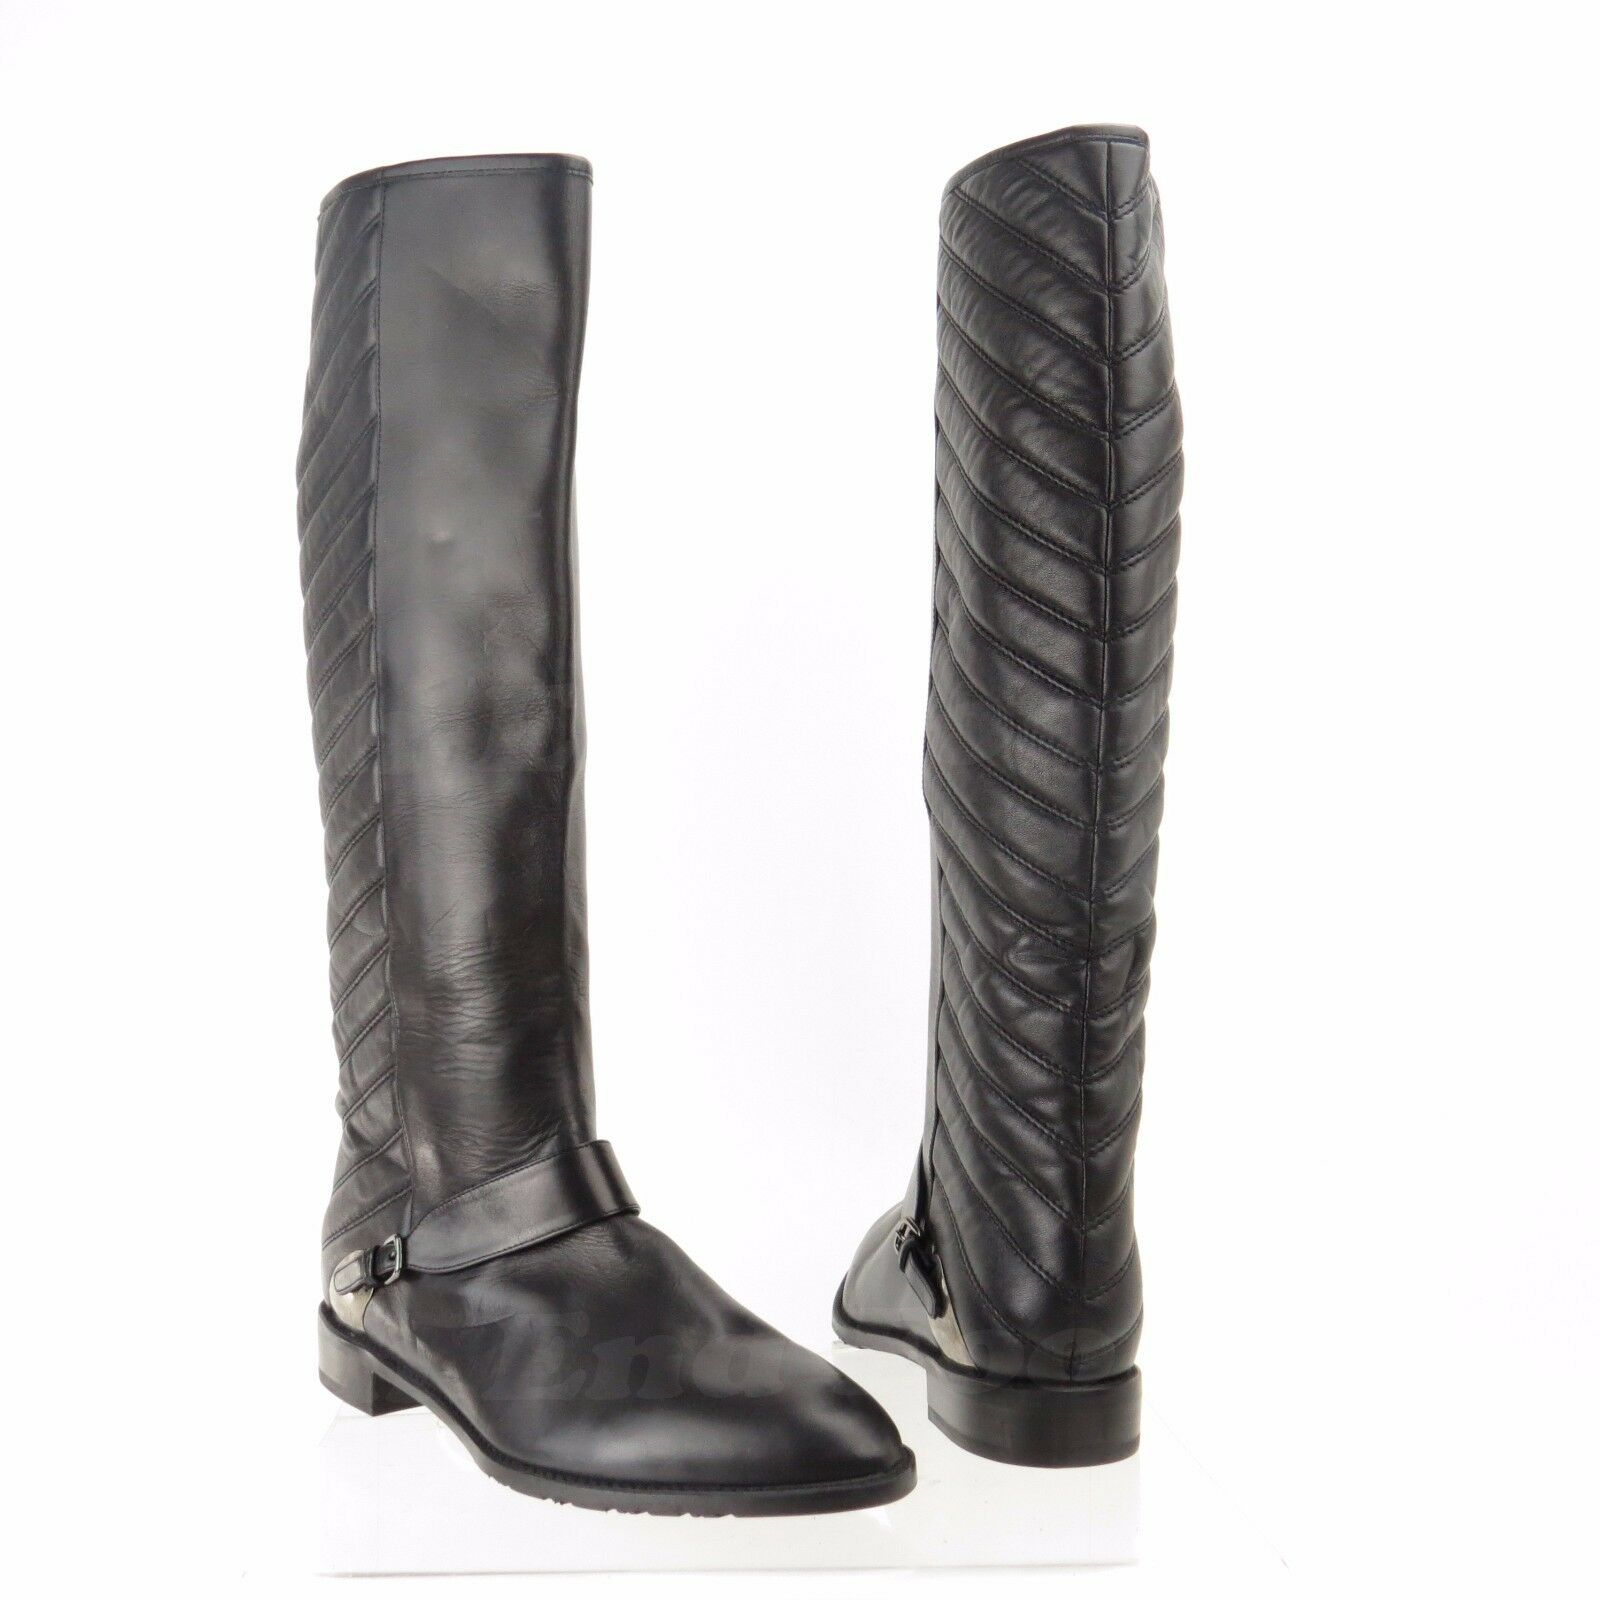 Stuart Weitzman Raceway Women's shoes Black Leather Boots Size 9.5 M NEW   695